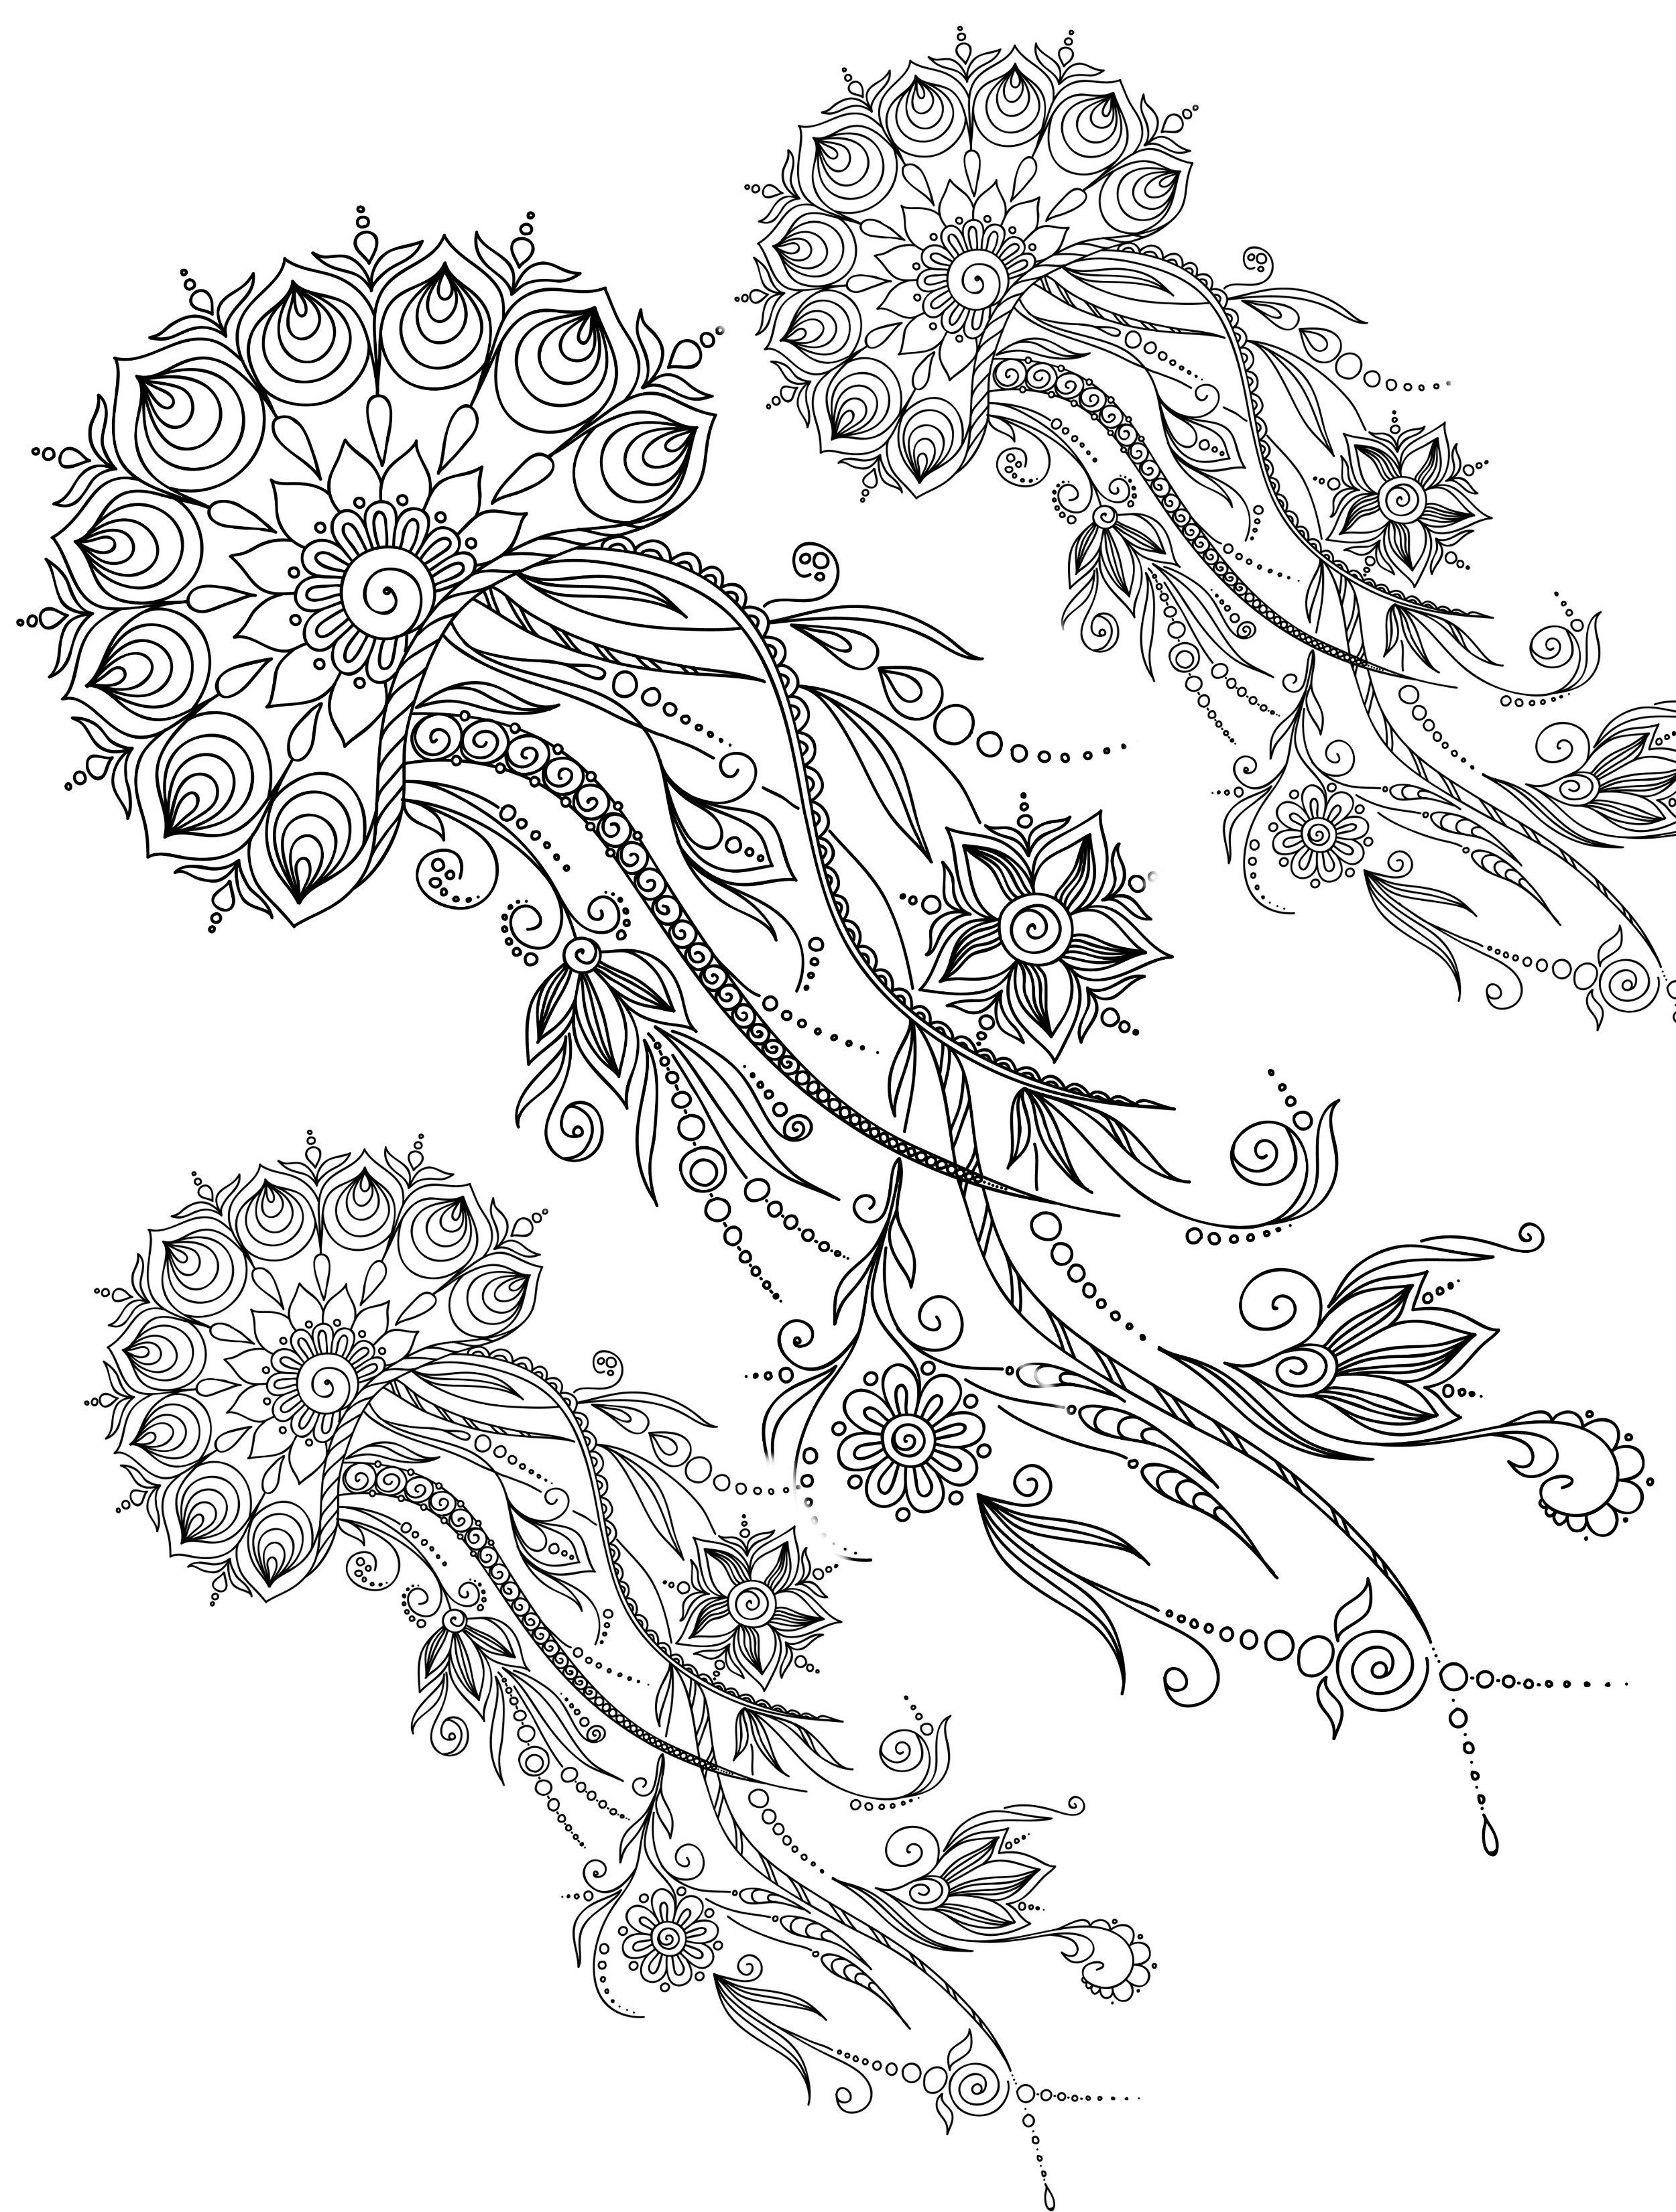 Free coloring pages of peacock feathers coloring everyday printable - Free Coloring Pages Of Peacock Feathers Coloring Everyday Printable 25